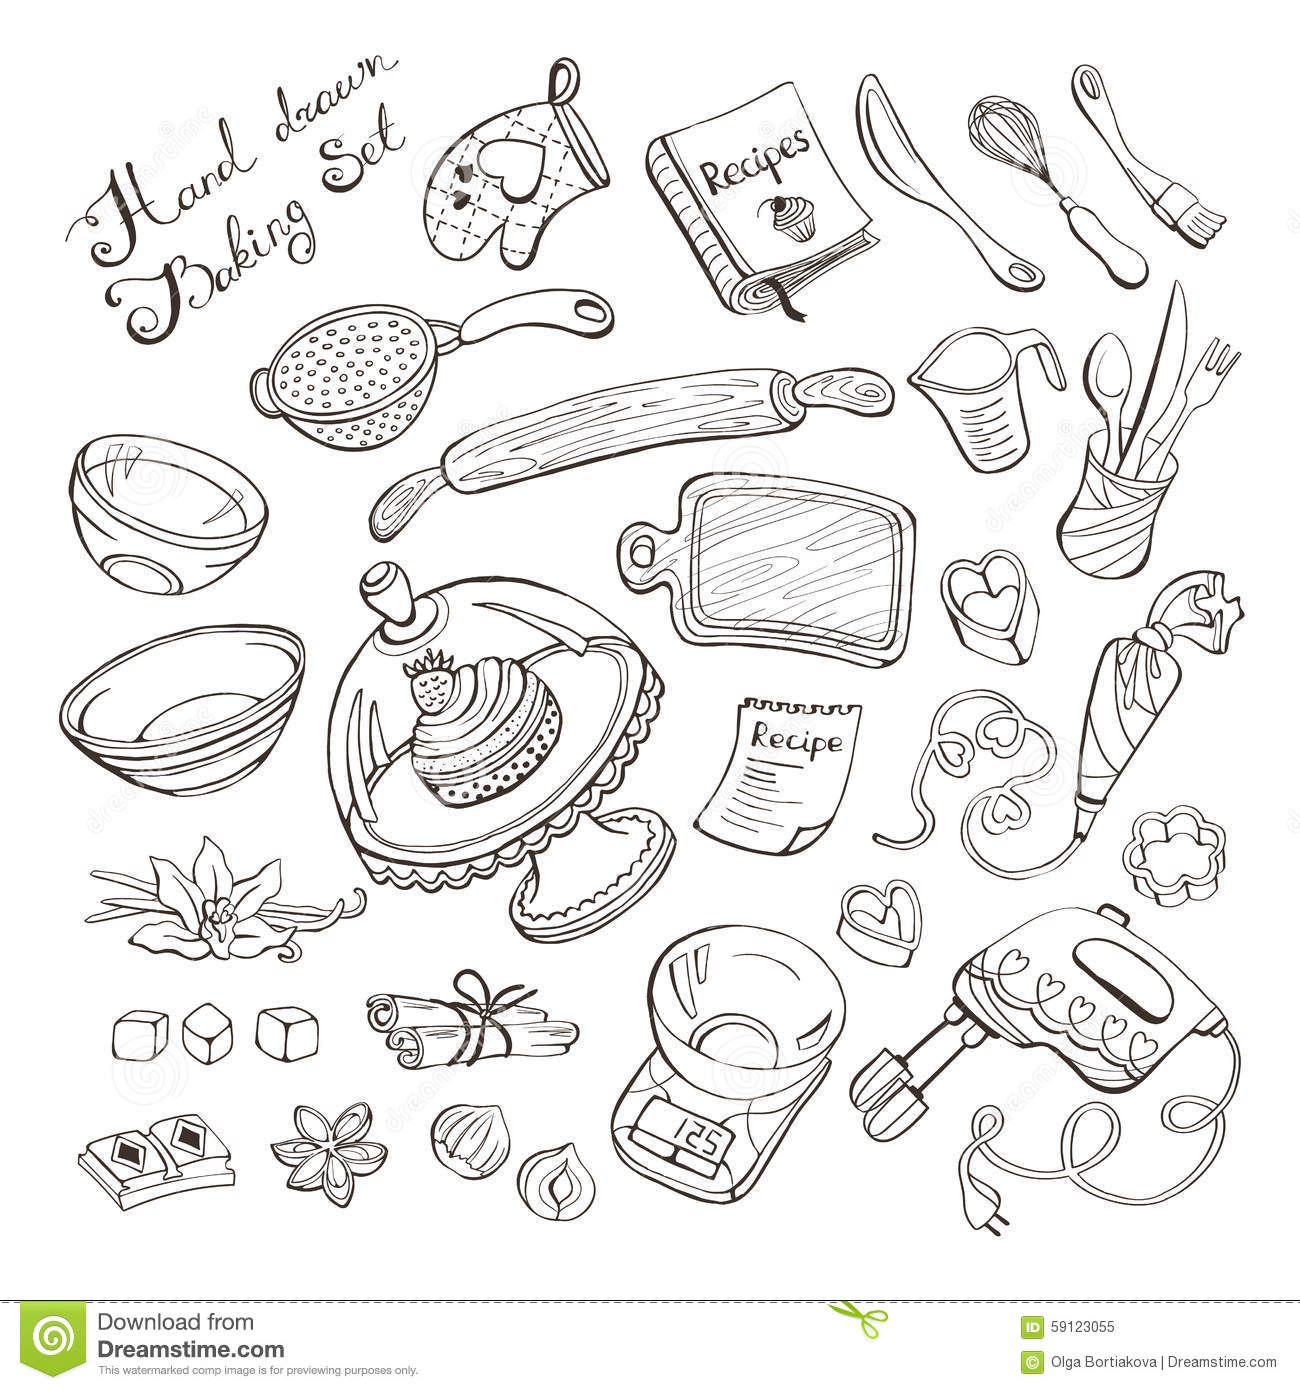 Kitchen Hand Tools And Their Uses With Pictures: Kitchen Items For Baking Stock Vector